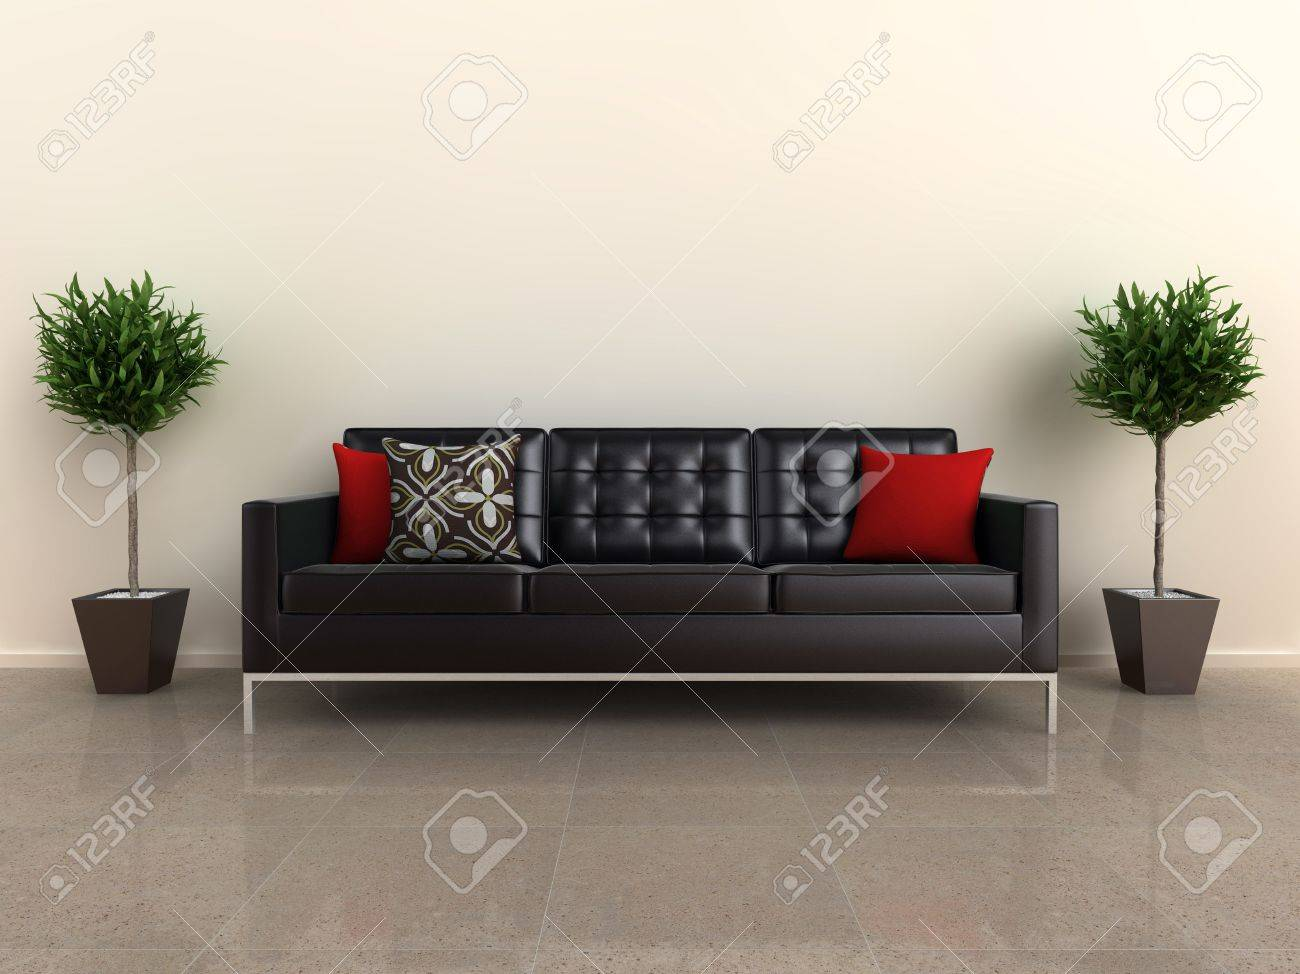 Designer couch  Illustration Of A Designer Sofa, With Plants Either Side, On ...